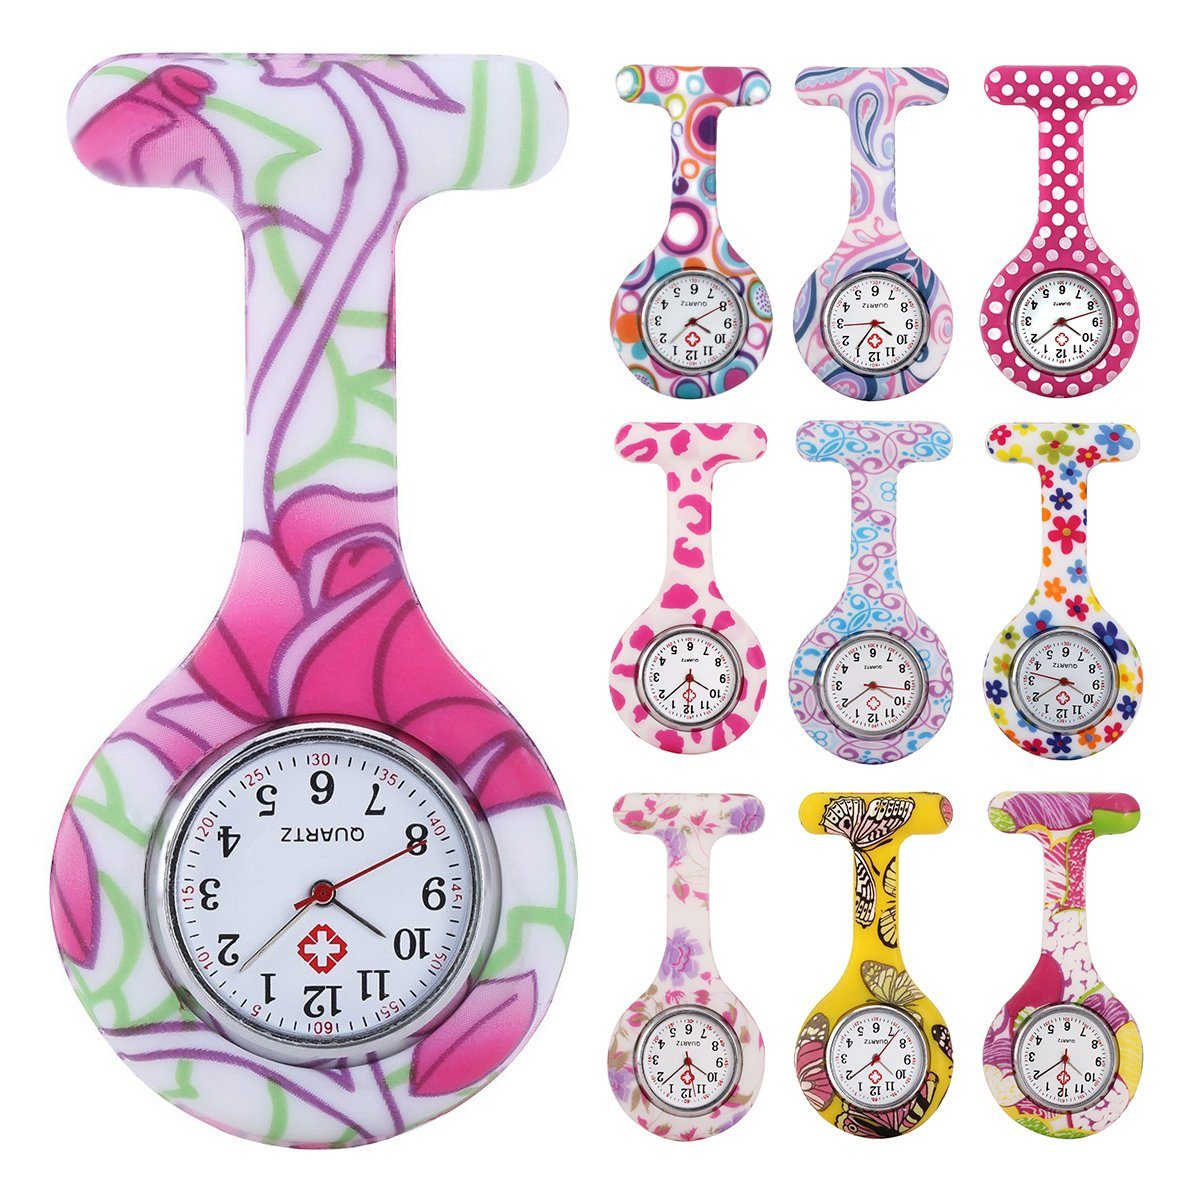 10pcs Floral Nurse Clip-on Fob Brooch Pocket Watch Lapel Watch for Women Girl (Pack #3) by Alienwolf